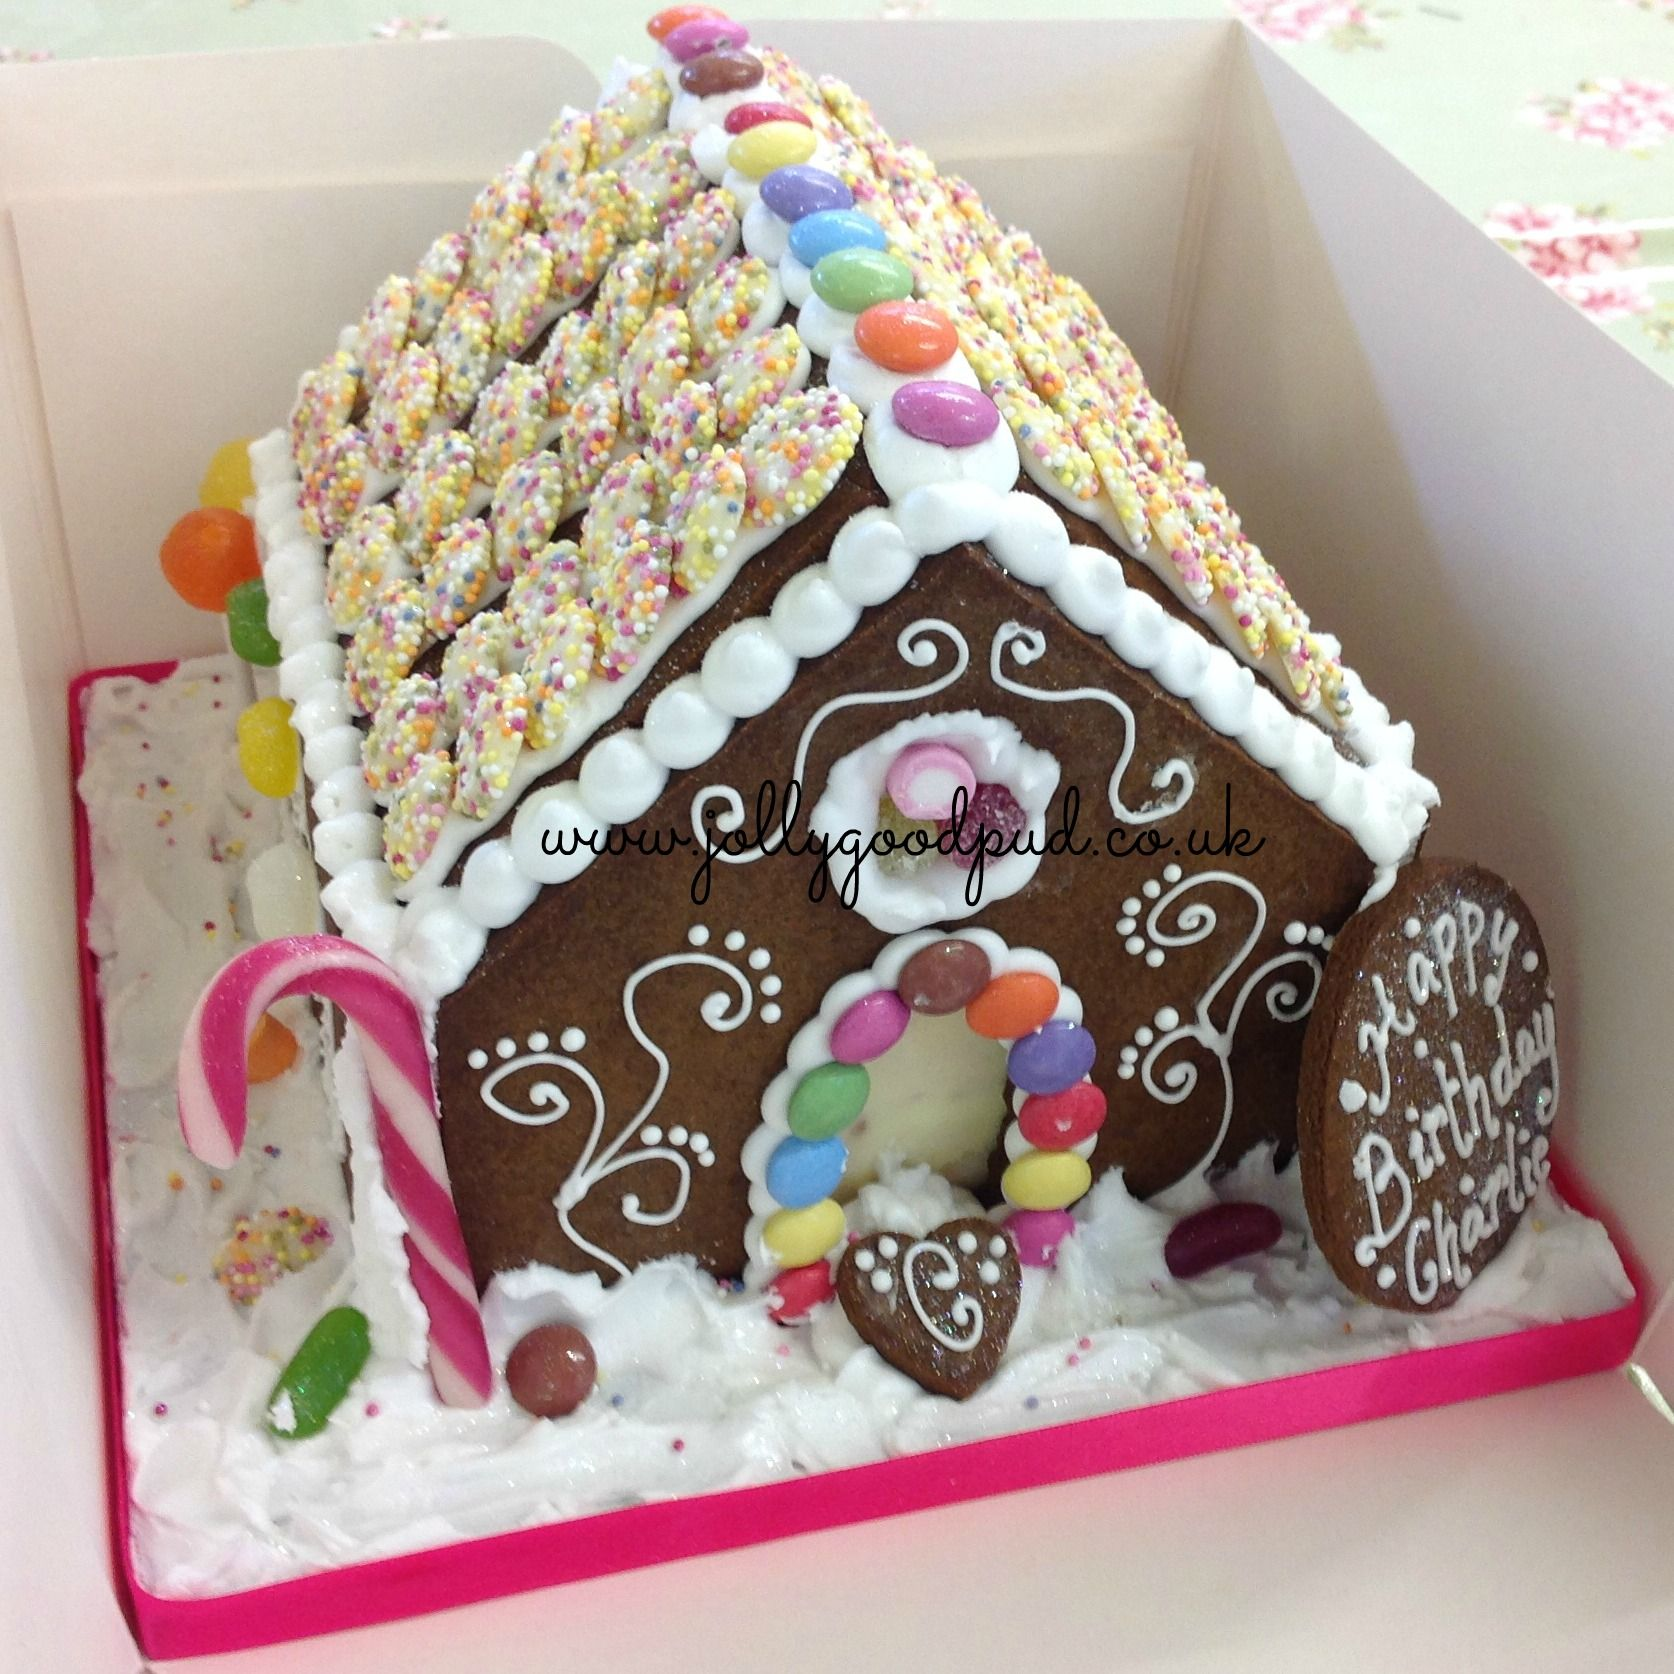 Gingerbread House Birthday Cake From The Jolly Good Pud